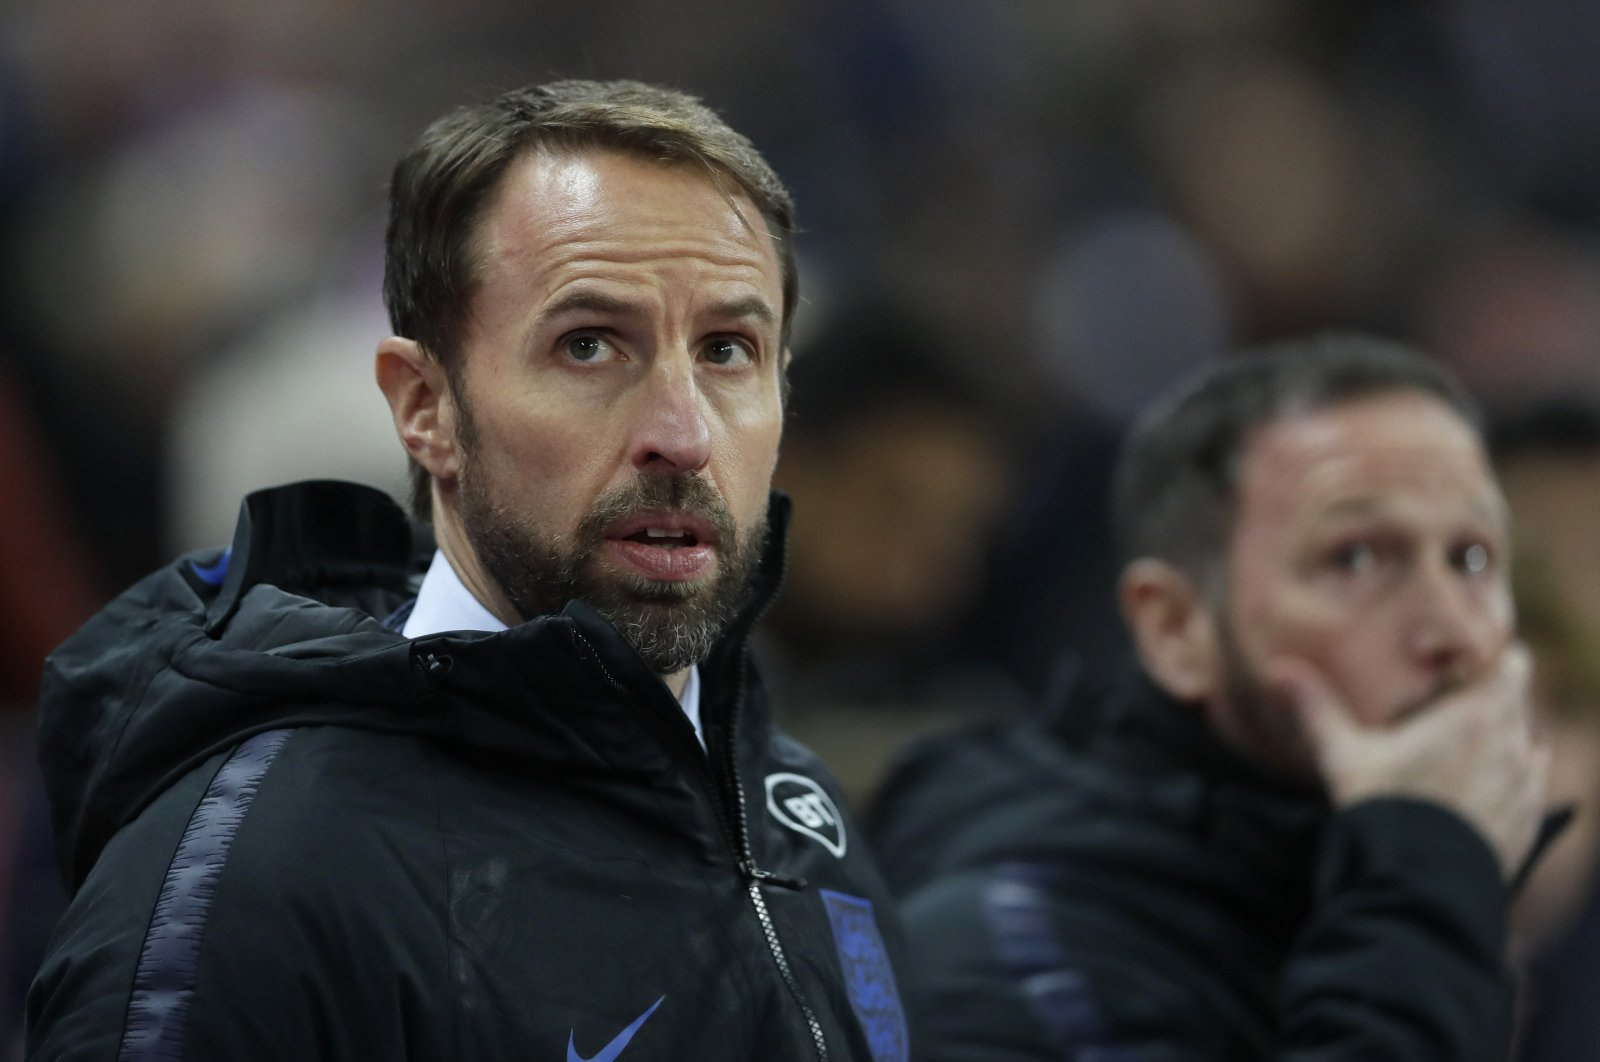 Gareth Southgate during a Euro 2020 qualifying match in London, Britain, Nov. 14, 2019. (AP Photo)